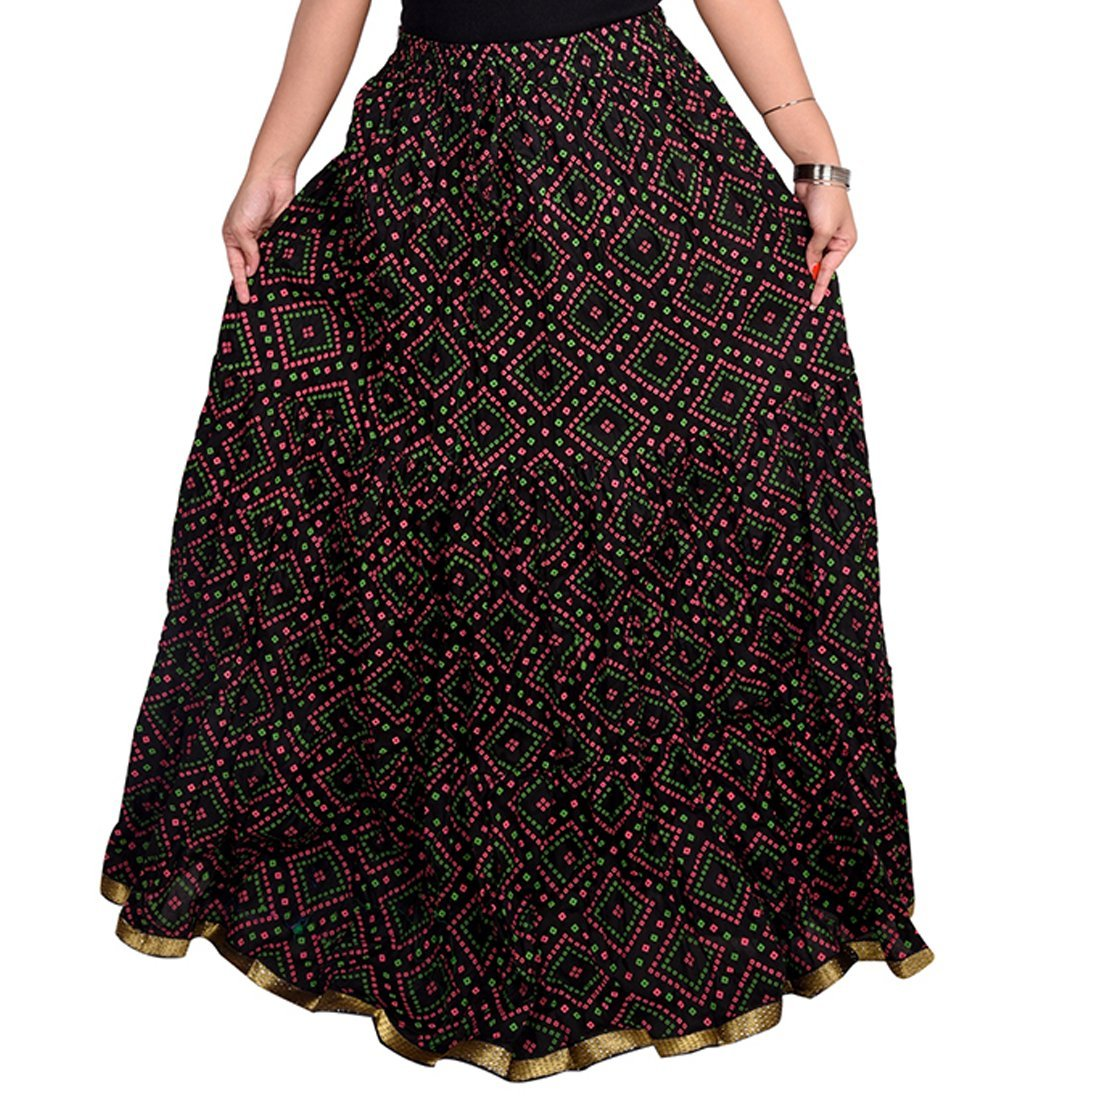 Decot Paradise Women's Cotton Print Skirt (Black)